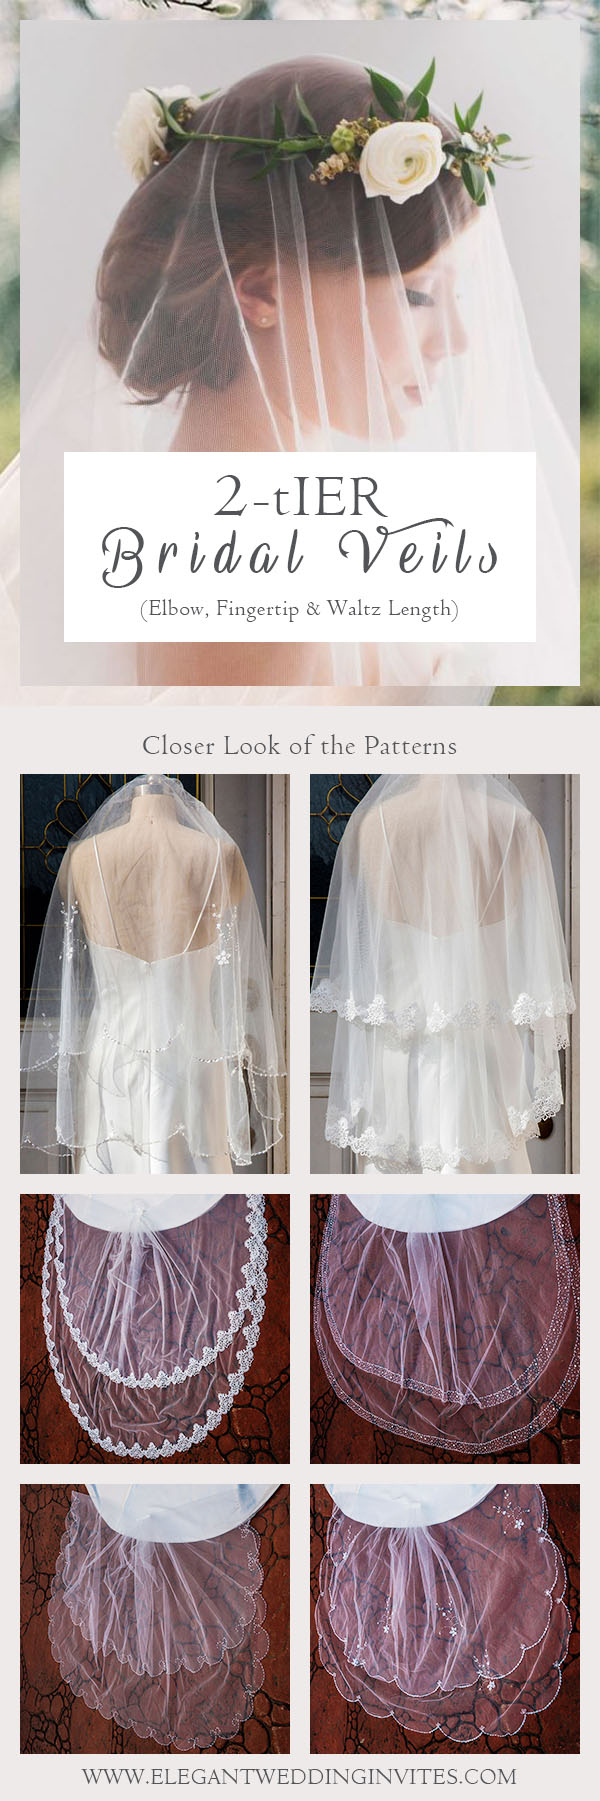 two-tier wedding bridal veils